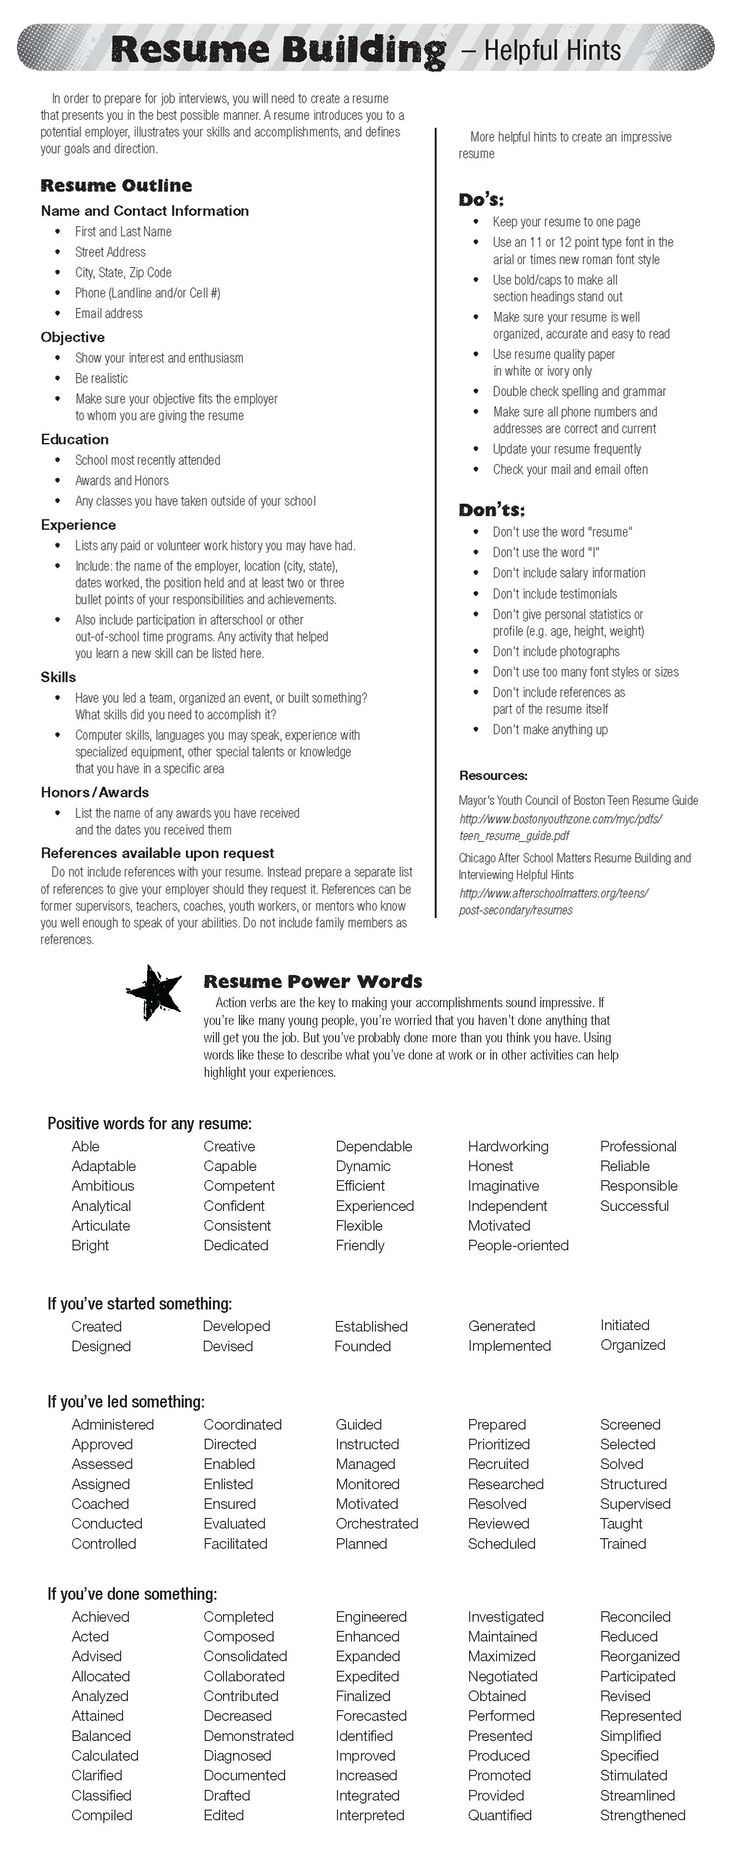 Opposenewapstandardsus  Pleasing  Ideas About Resume On Pinterest  Cv Format Resume  With Glamorous Check Out Todays Resume Building Tips Resume Resumepowerwords With Enchanting Bartenders Resume Also Resume For College Freshmen In Addition Purpose Of Resume And Careerbuilder Resume As Well As Resume Templates Word  Additionally Rn Resume Templates From Pinterestcom With Opposenewapstandardsus  Glamorous  Ideas About Resume On Pinterest  Cv Format Resume  With Enchanting Check Out Todays Resume Building Tips Resume Resumepowerwords And Pleasing Bartenders Resume Also Resume For College Freshmen In Addition Purpose Of Resume From Pinterestcom